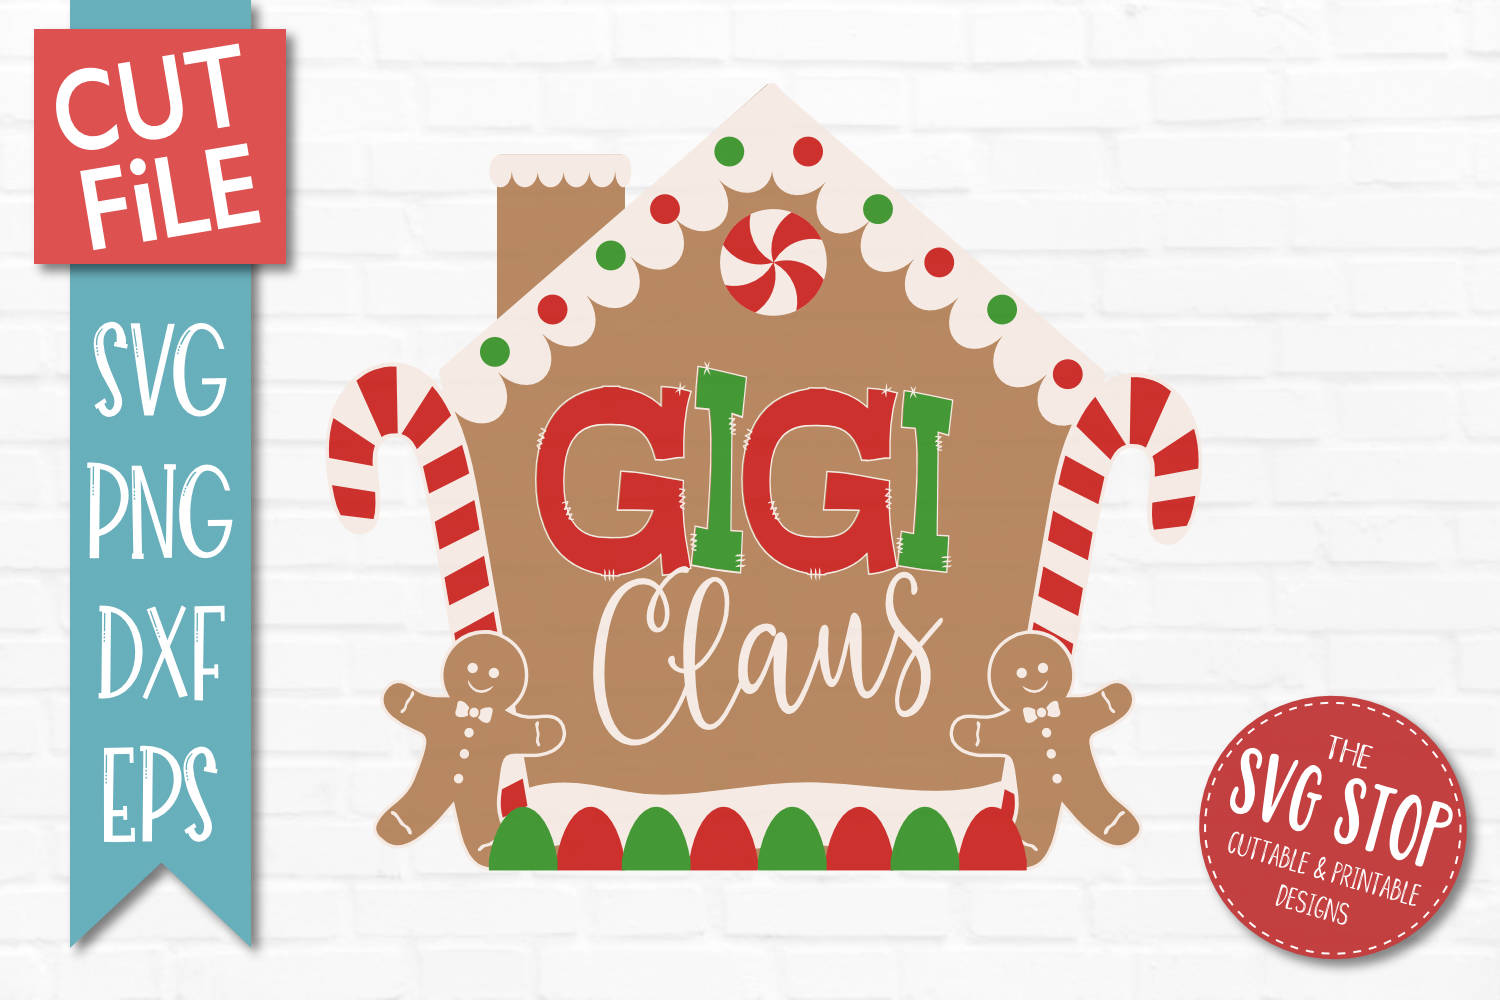 Gigi Claus Gingerbread Christmas SVG, PNG, DXF, EPS example image 1